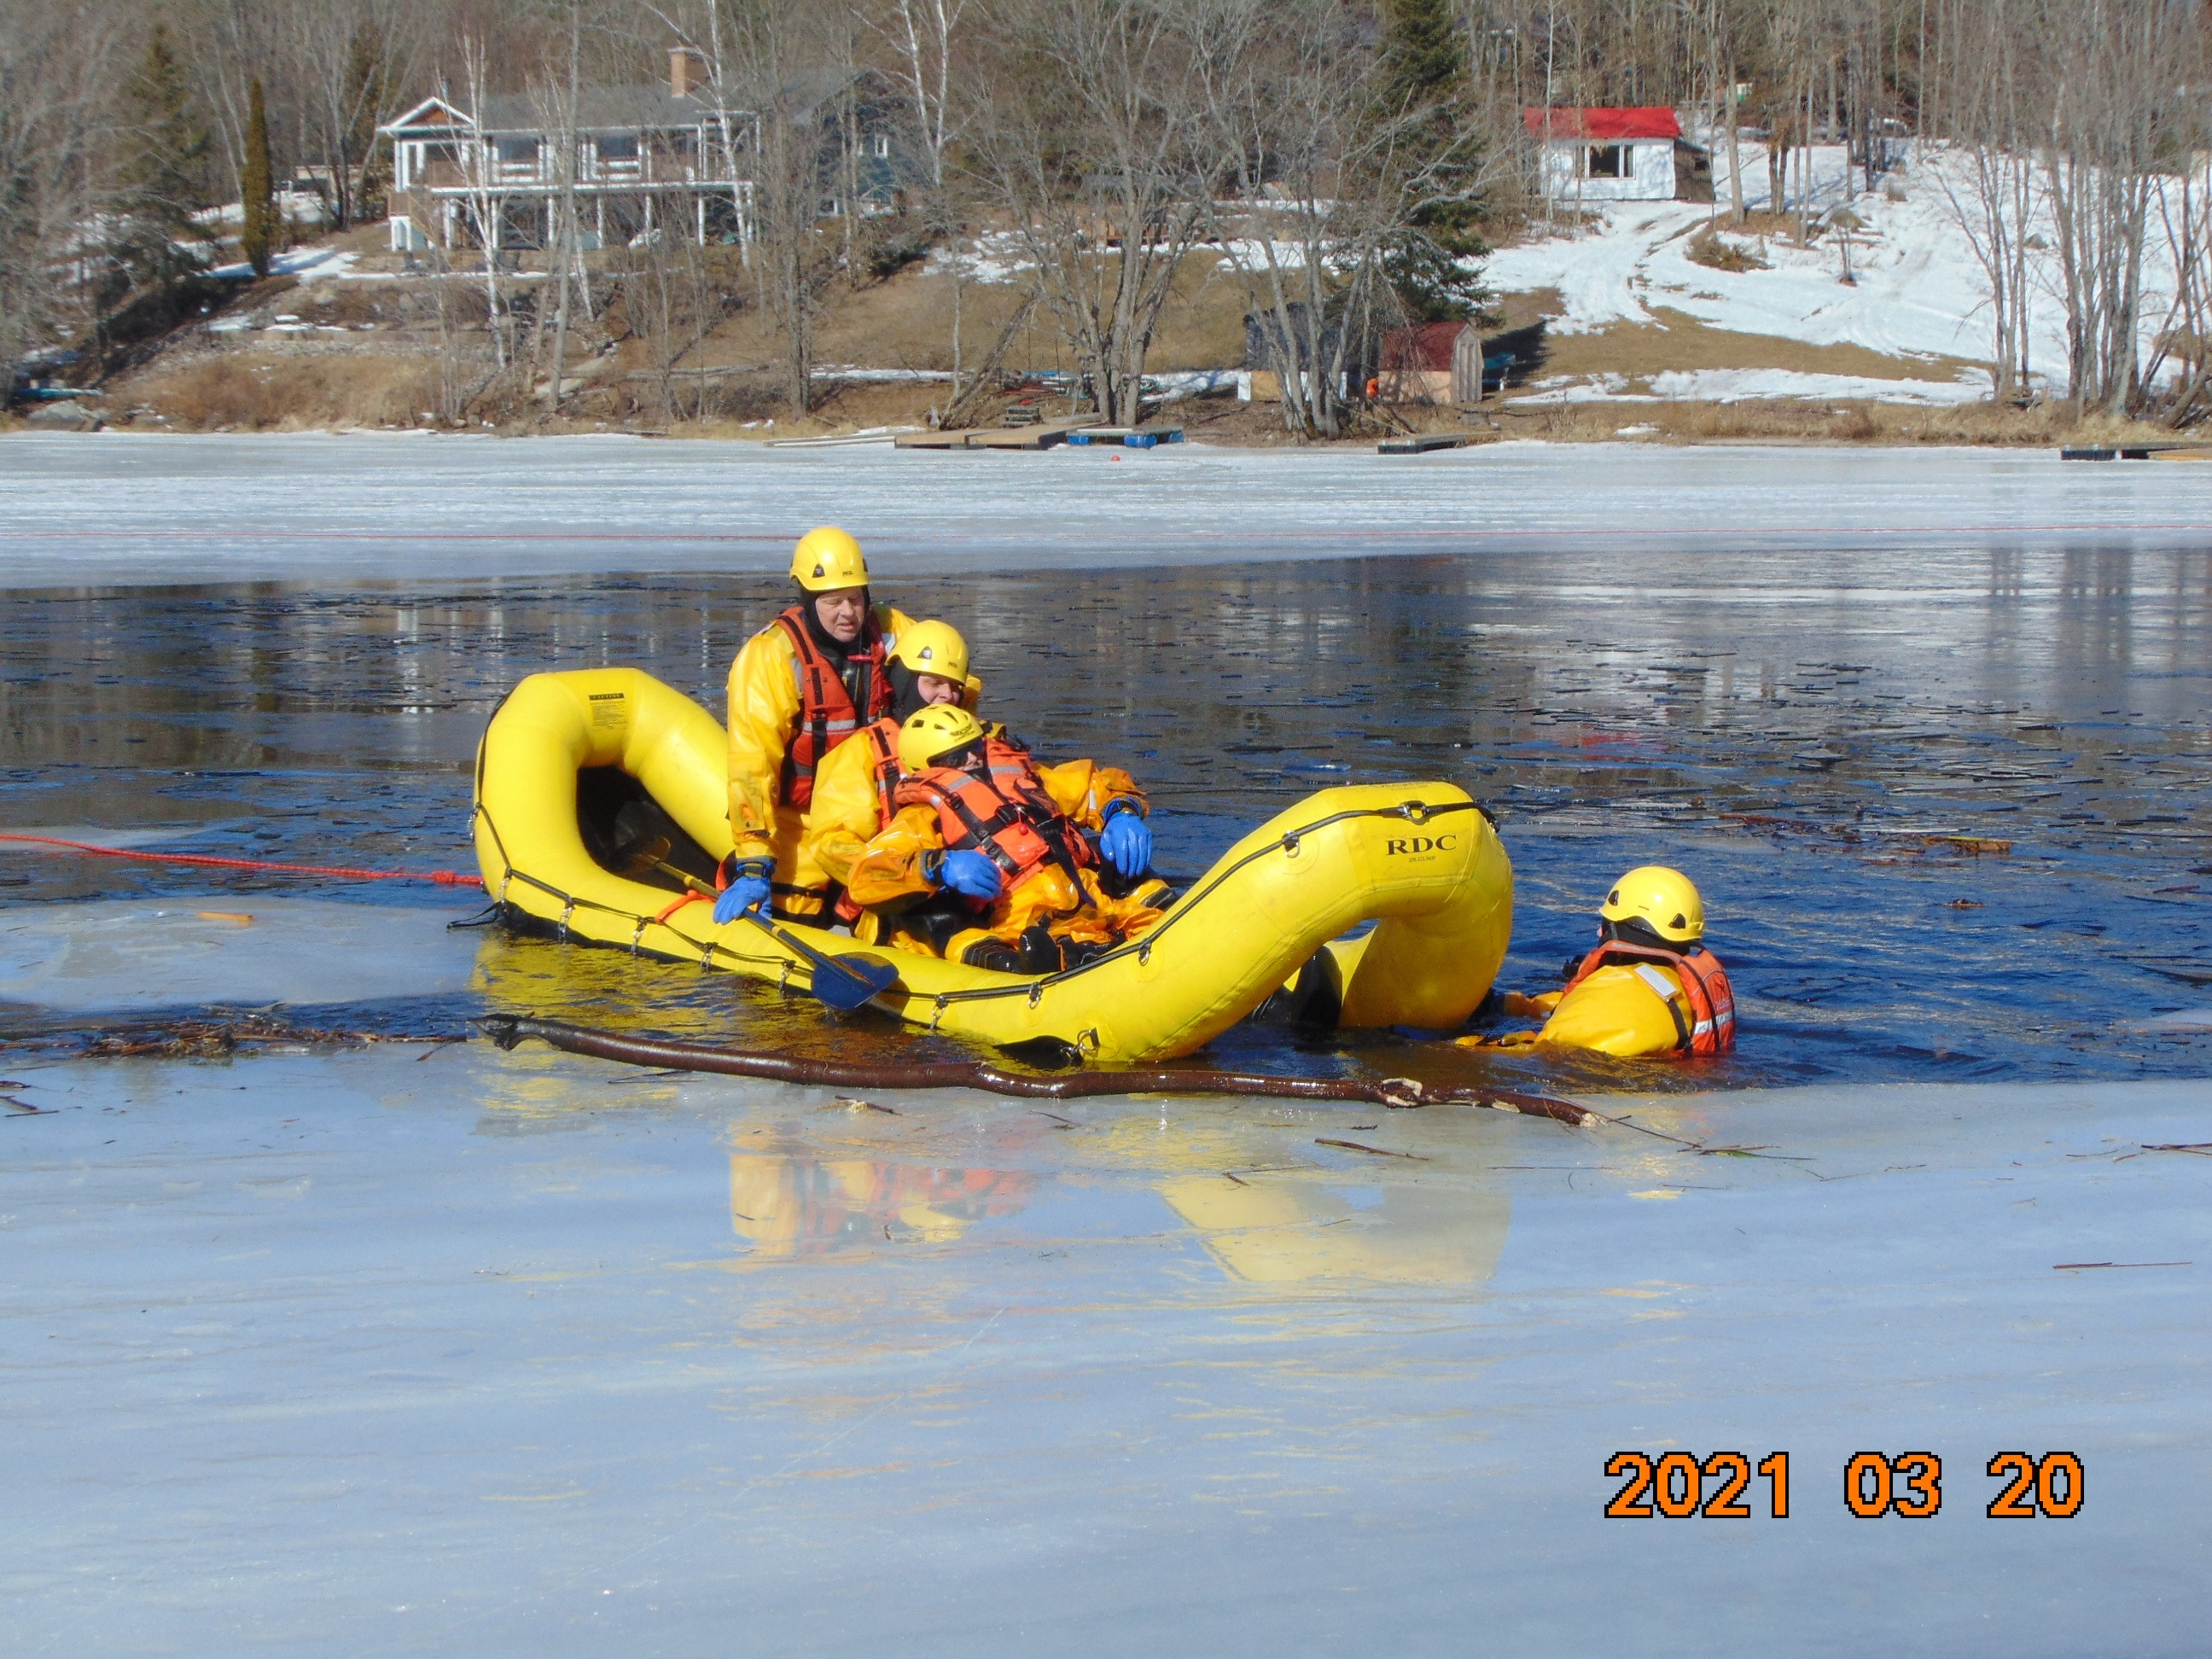 Members of the Dysart Fire Department in a Raft Practicing Ice Training